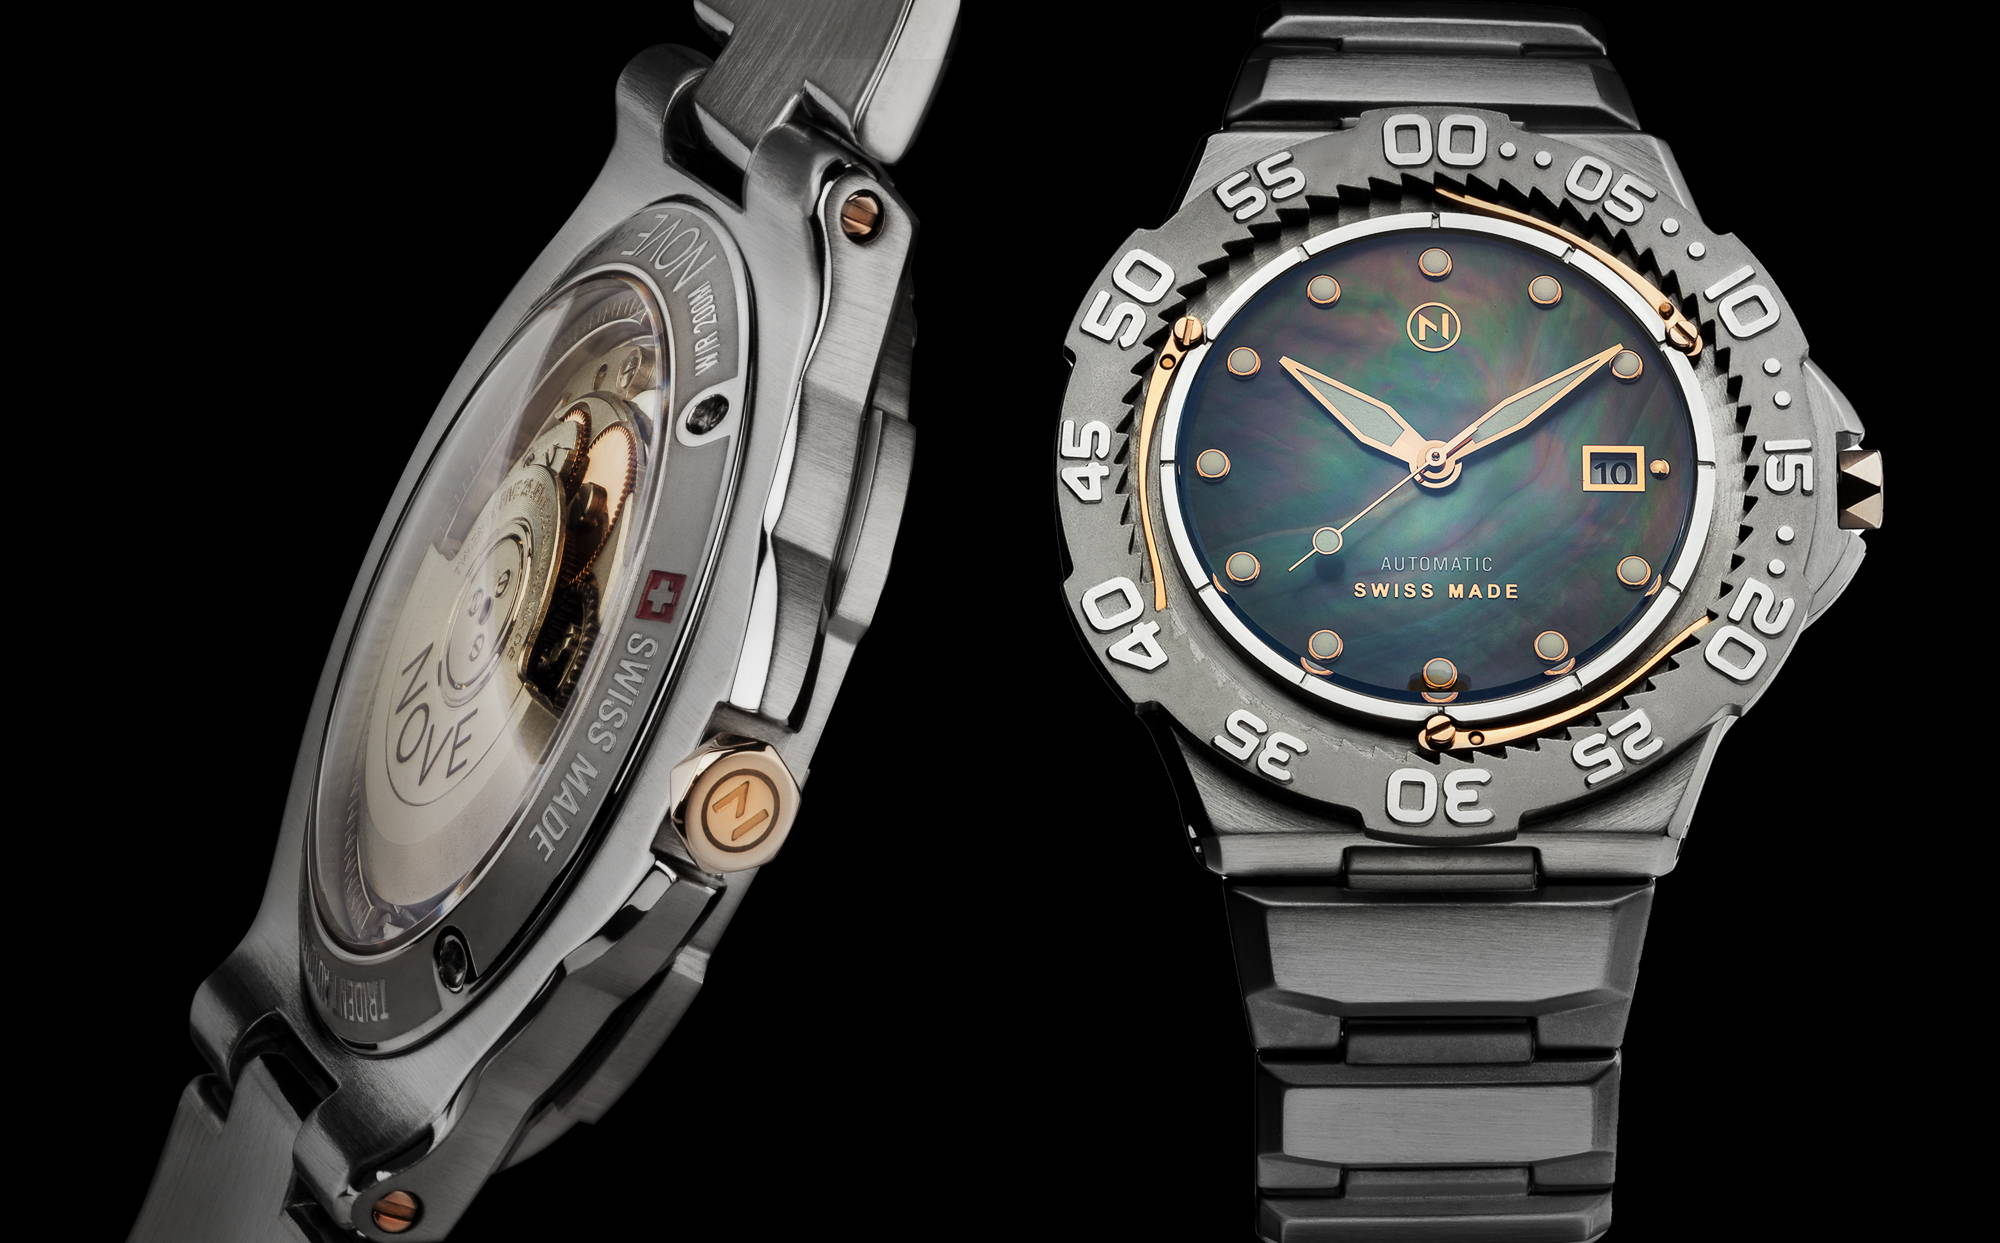 Silver slim trident automatic dive watch tool watch with beautiful Tahitian mother of pearl dial